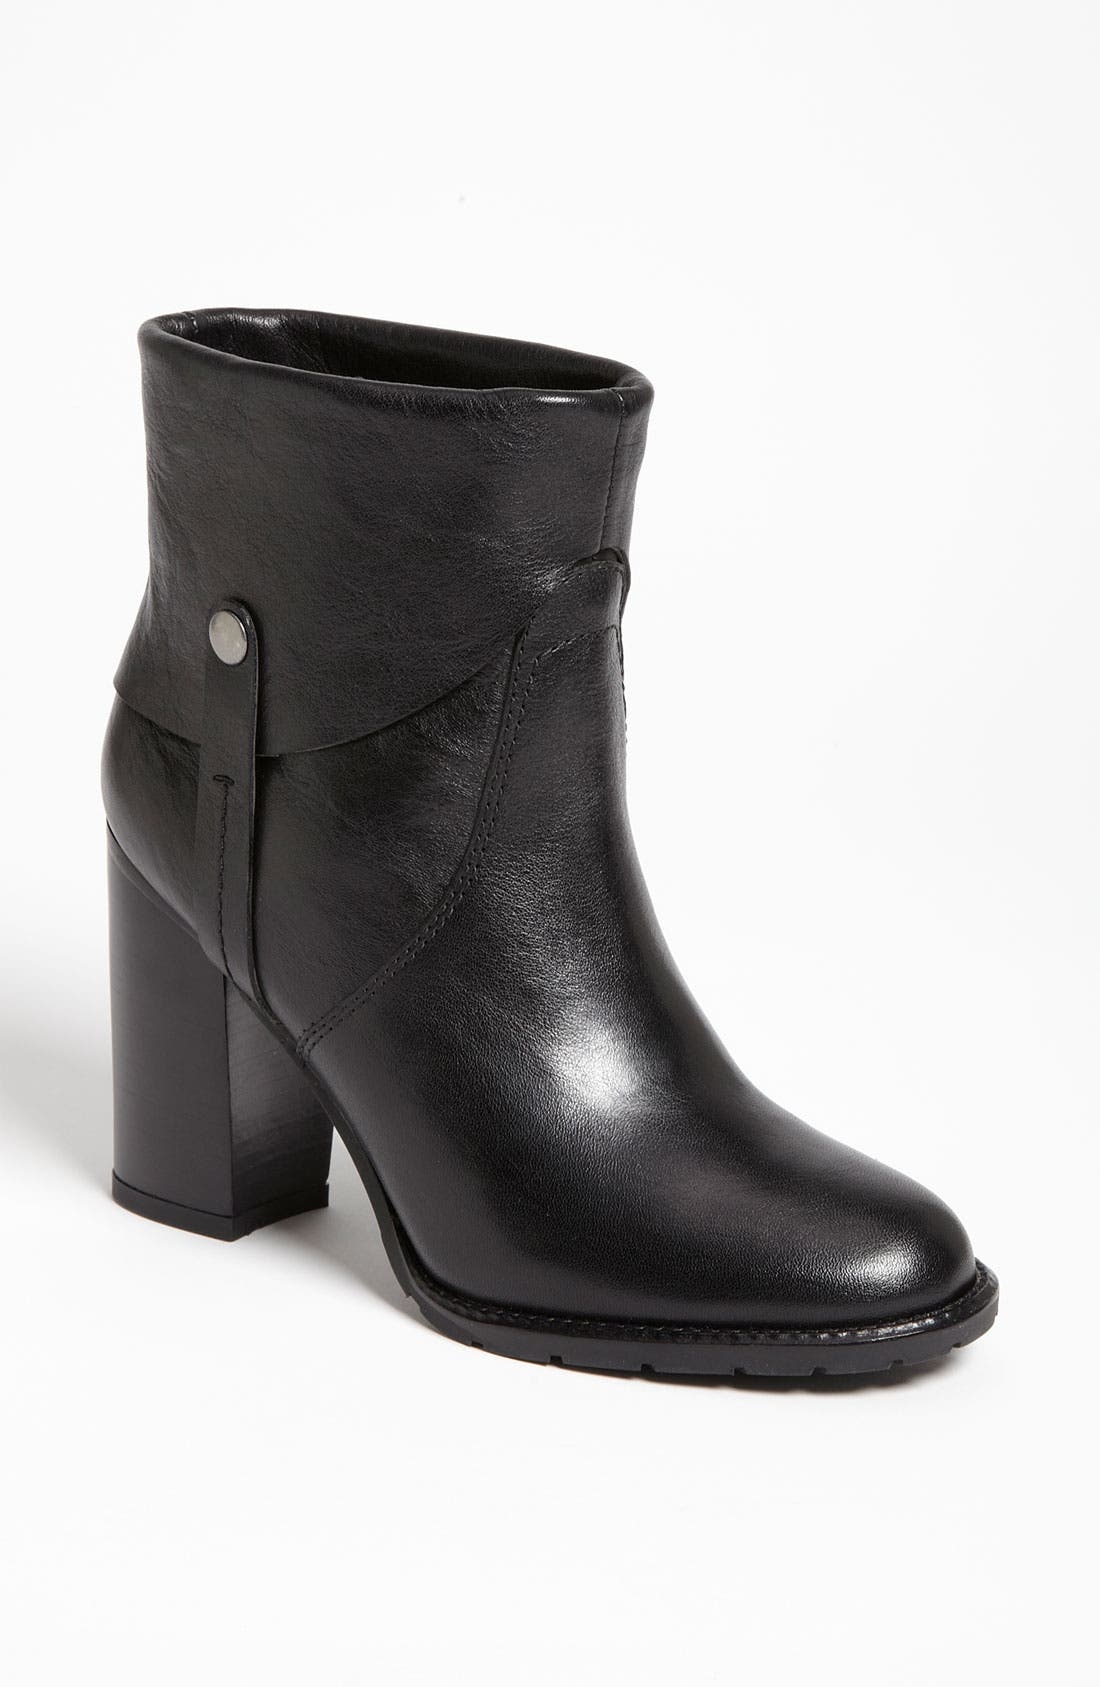 Alternate Image 1 Selected - Franco Sarto 'Occela' Bootie